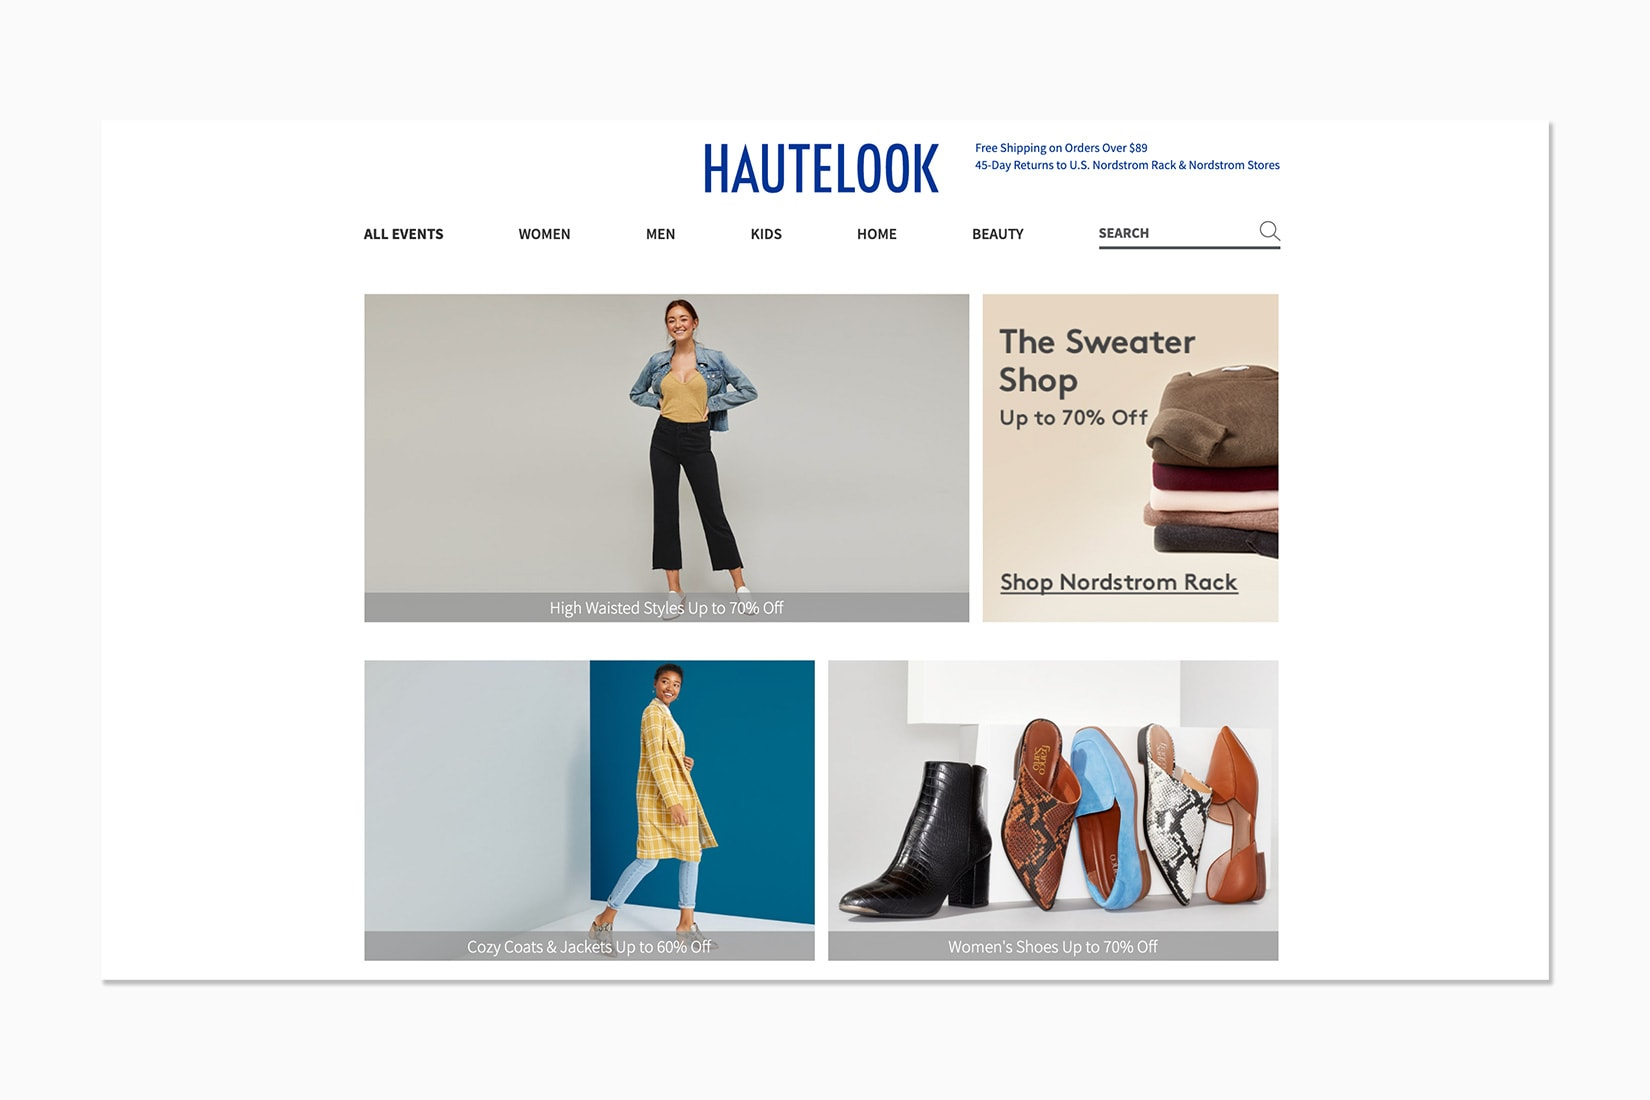 best luxury private sales discount website hautelook - Luxe Digital